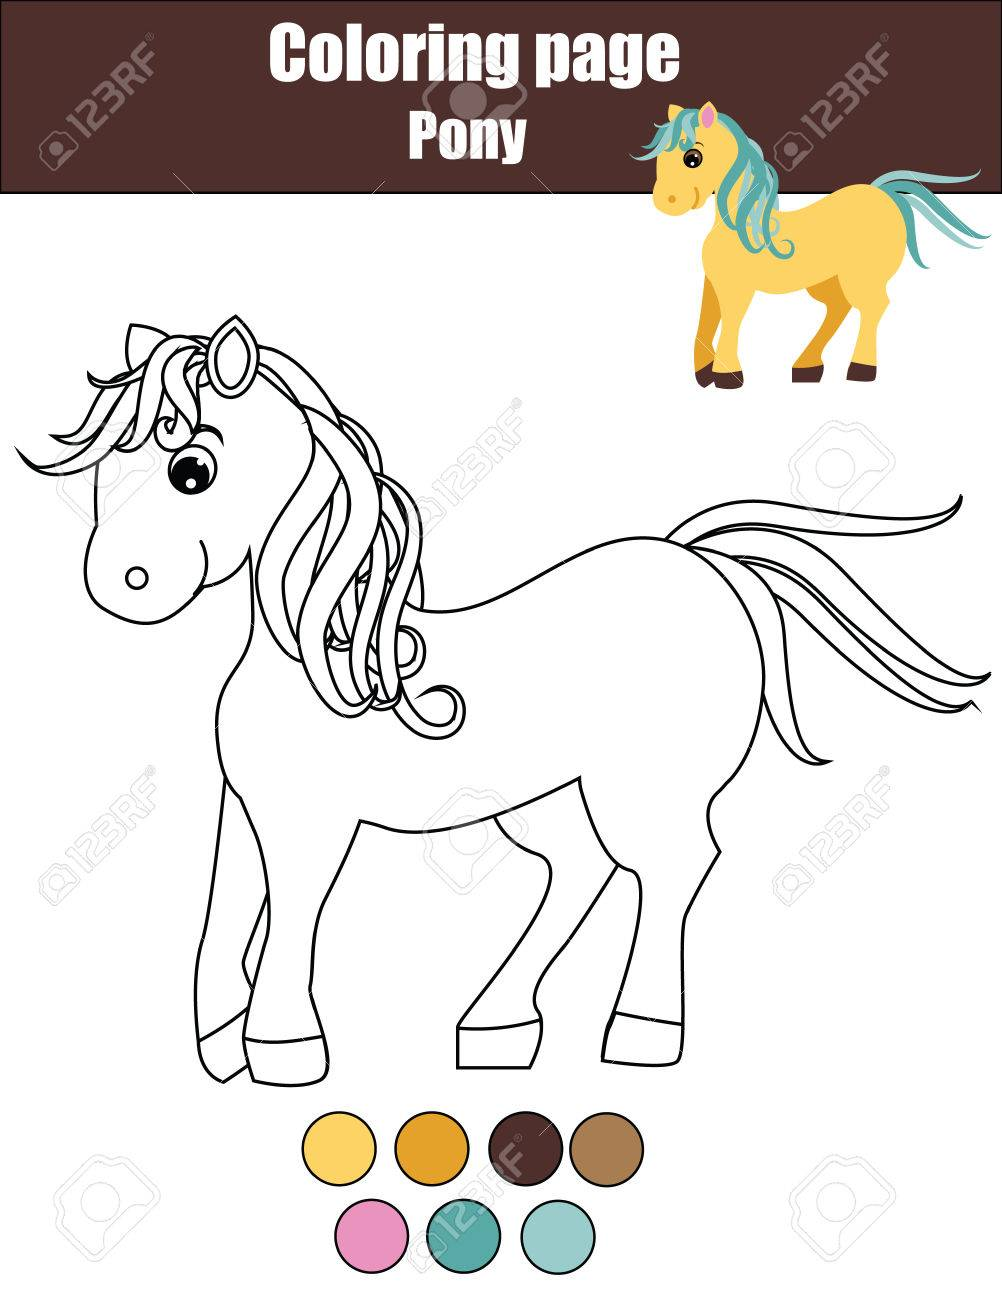 Coloring Page With Cute Pony Color The Little Horse Drawing Royalty Free Cliparts Vectors And Stock Illustration Image 63020213